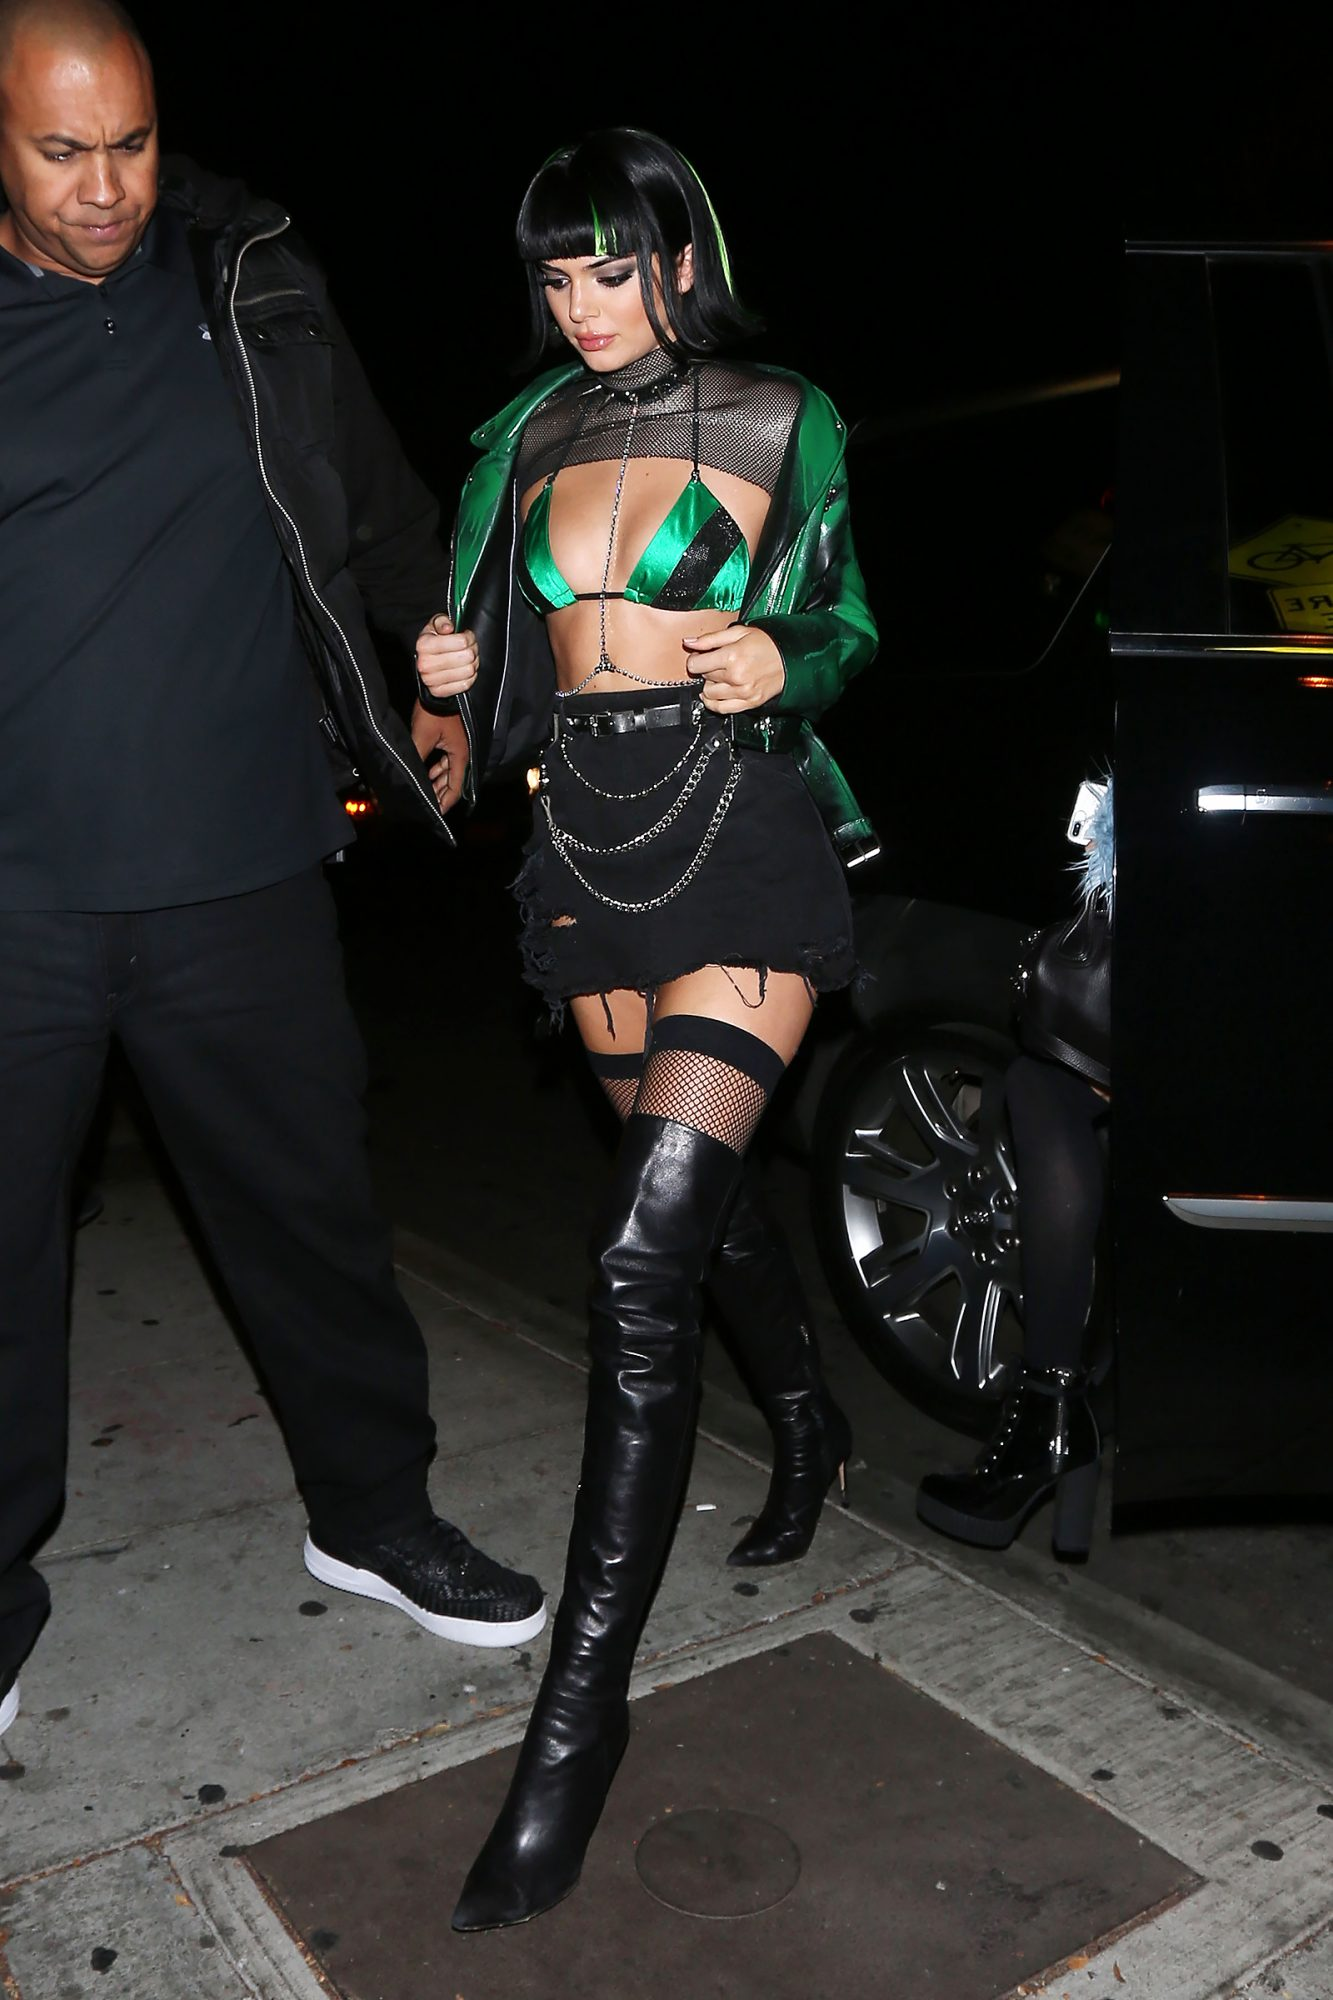 Kendall Jenner wears a scantily clad costume as she goes to the Delilah club to celebrate her 22nd birthday and Halloween as well